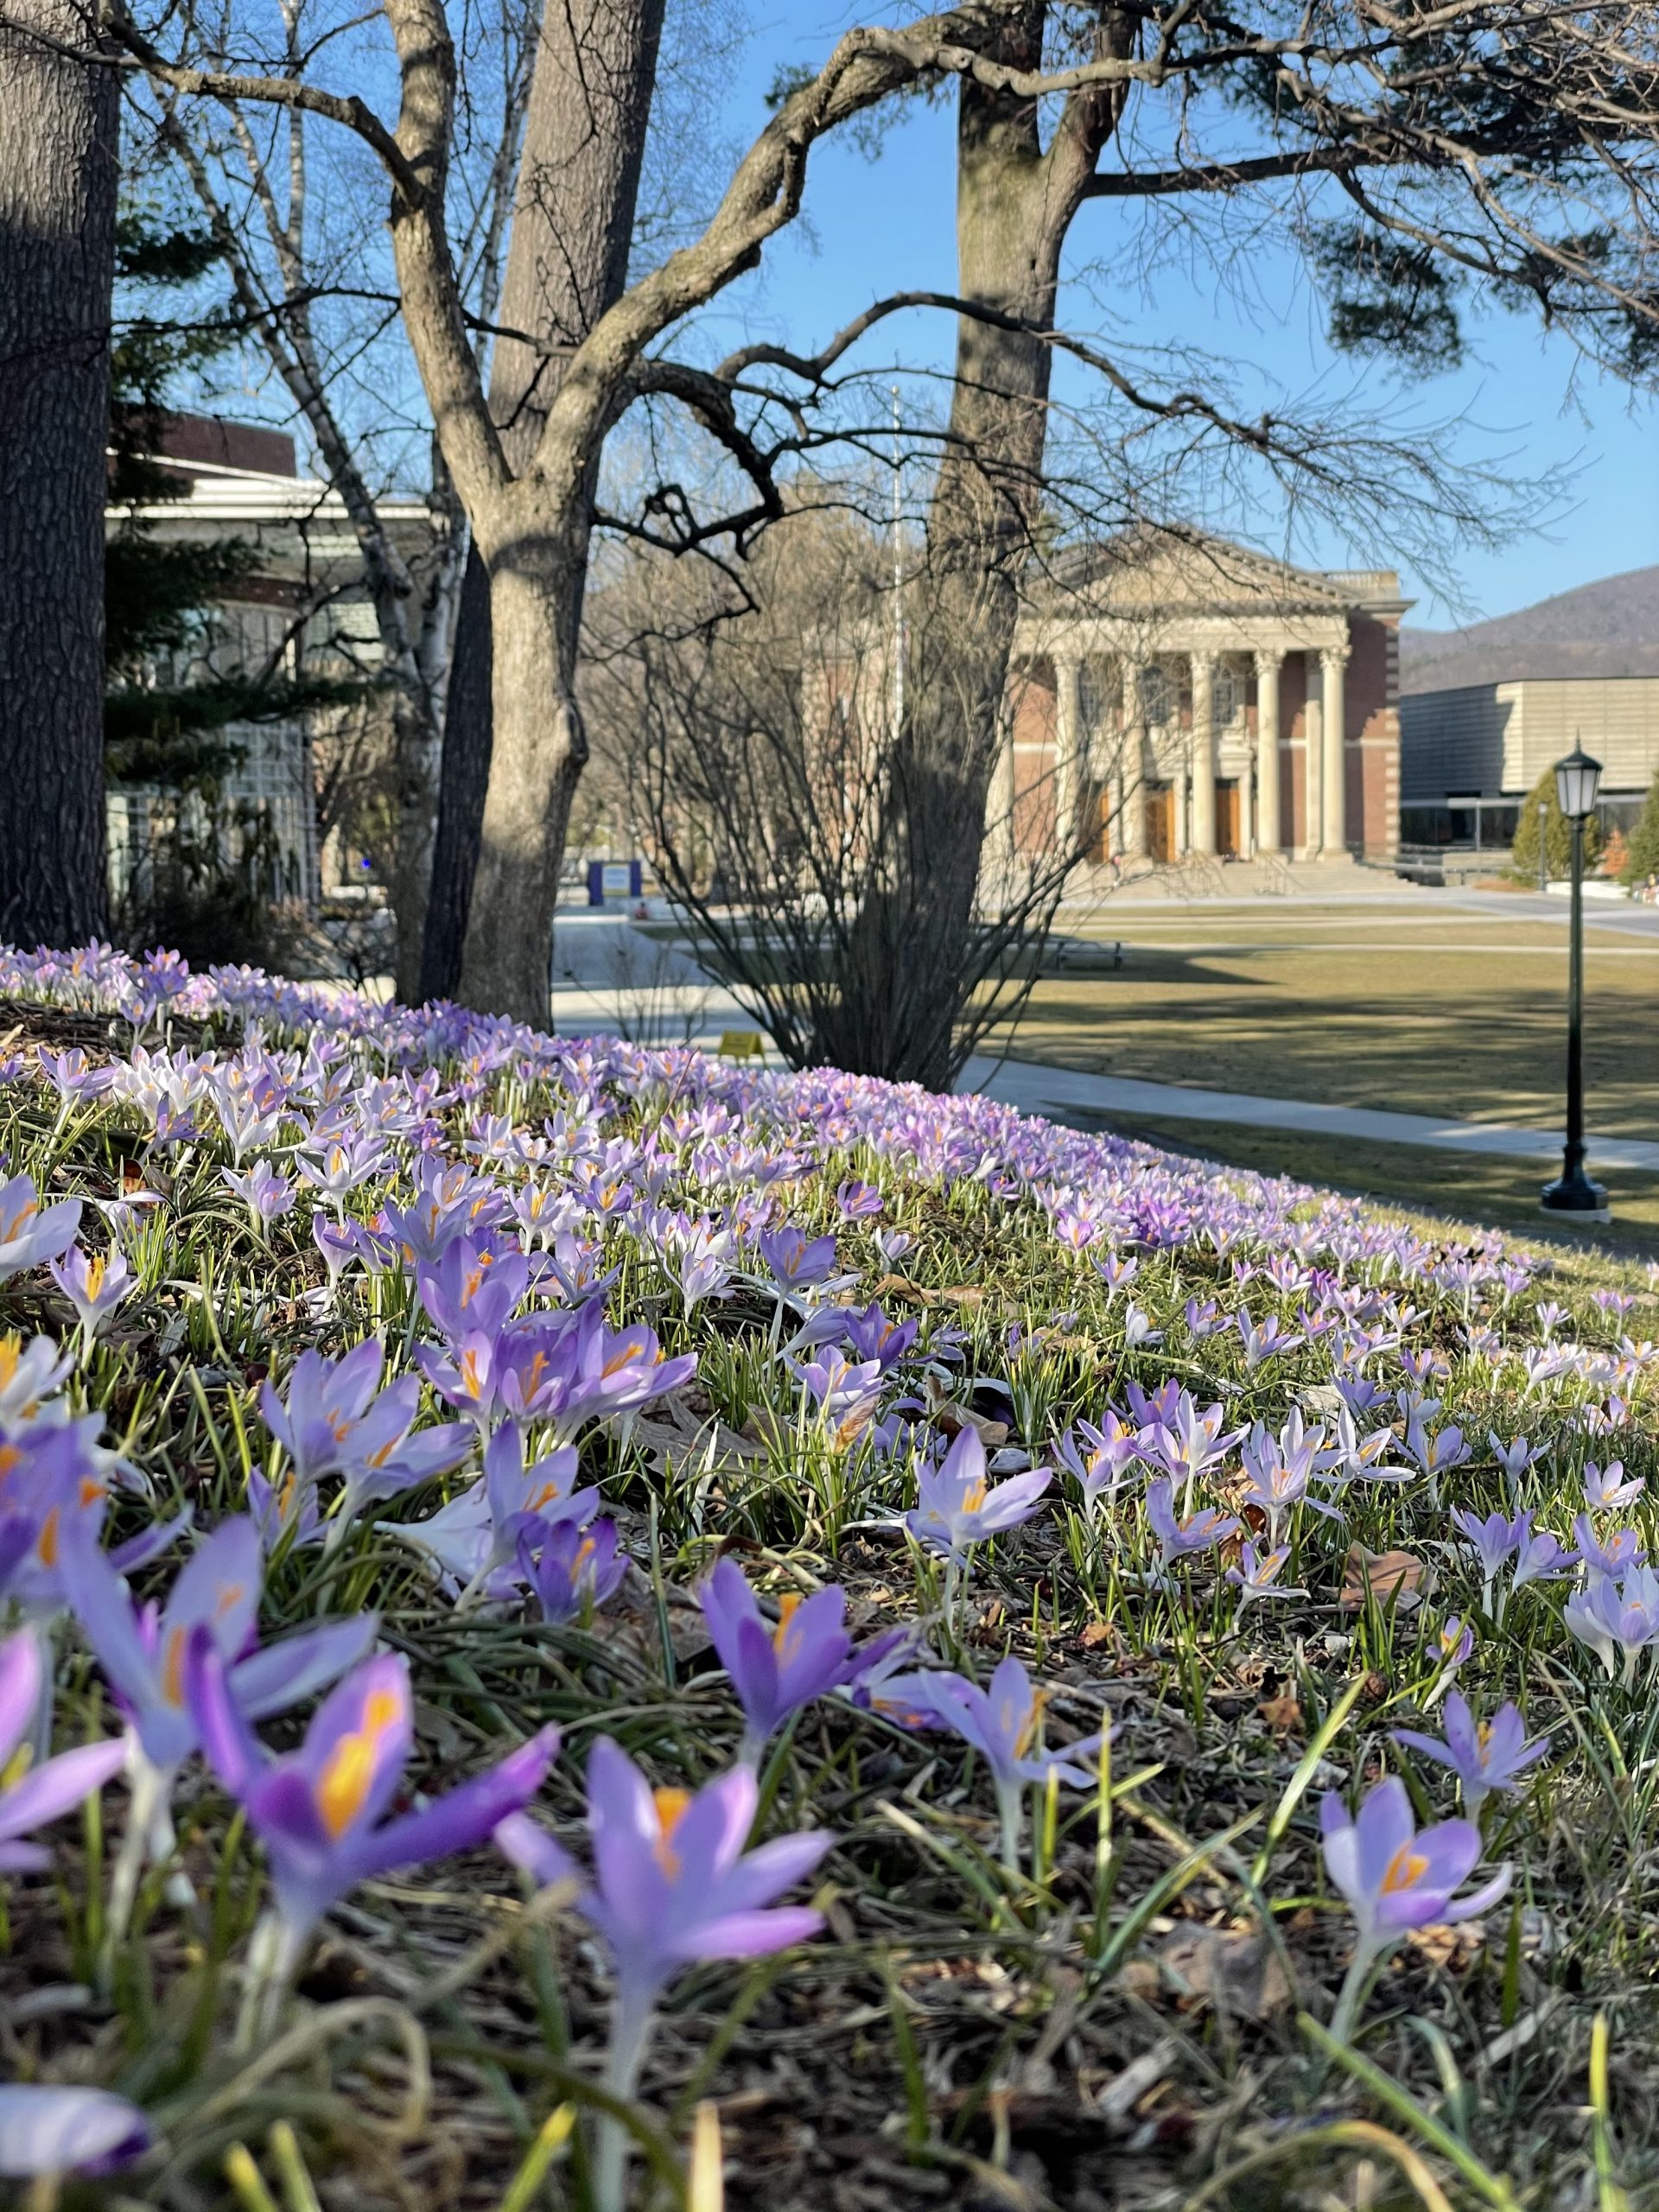 a photo with a field of crocuses in the foreground and Chapin Hall in the background in the early spring